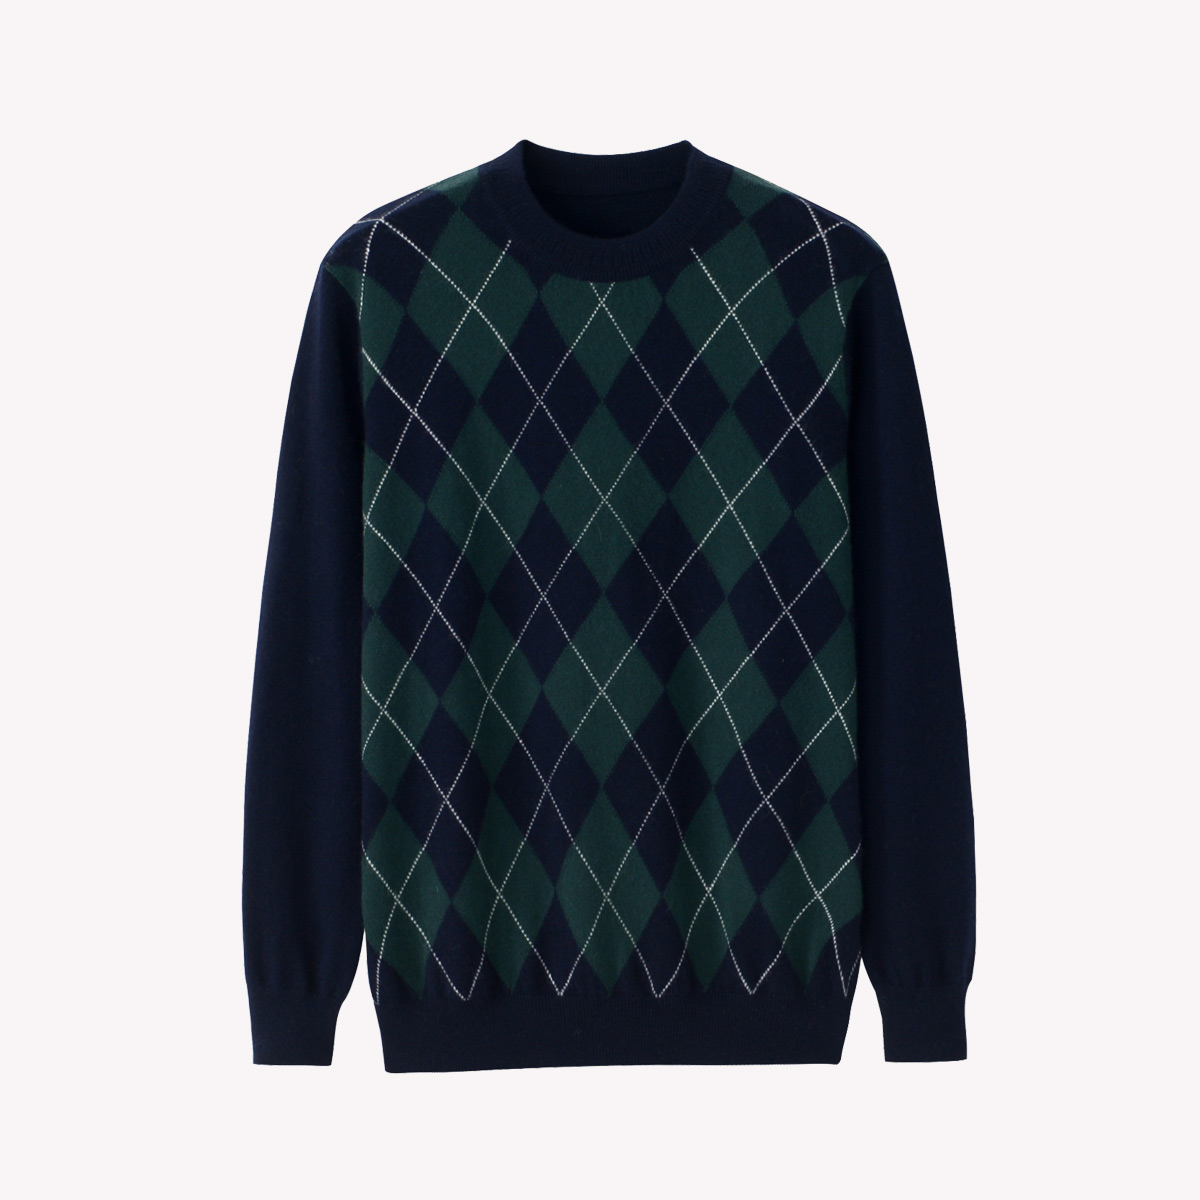 Xingrong autumn winter new cashmere sweater mens round neck Pullover diamond lattice slim fit Korean thin knitted sweater